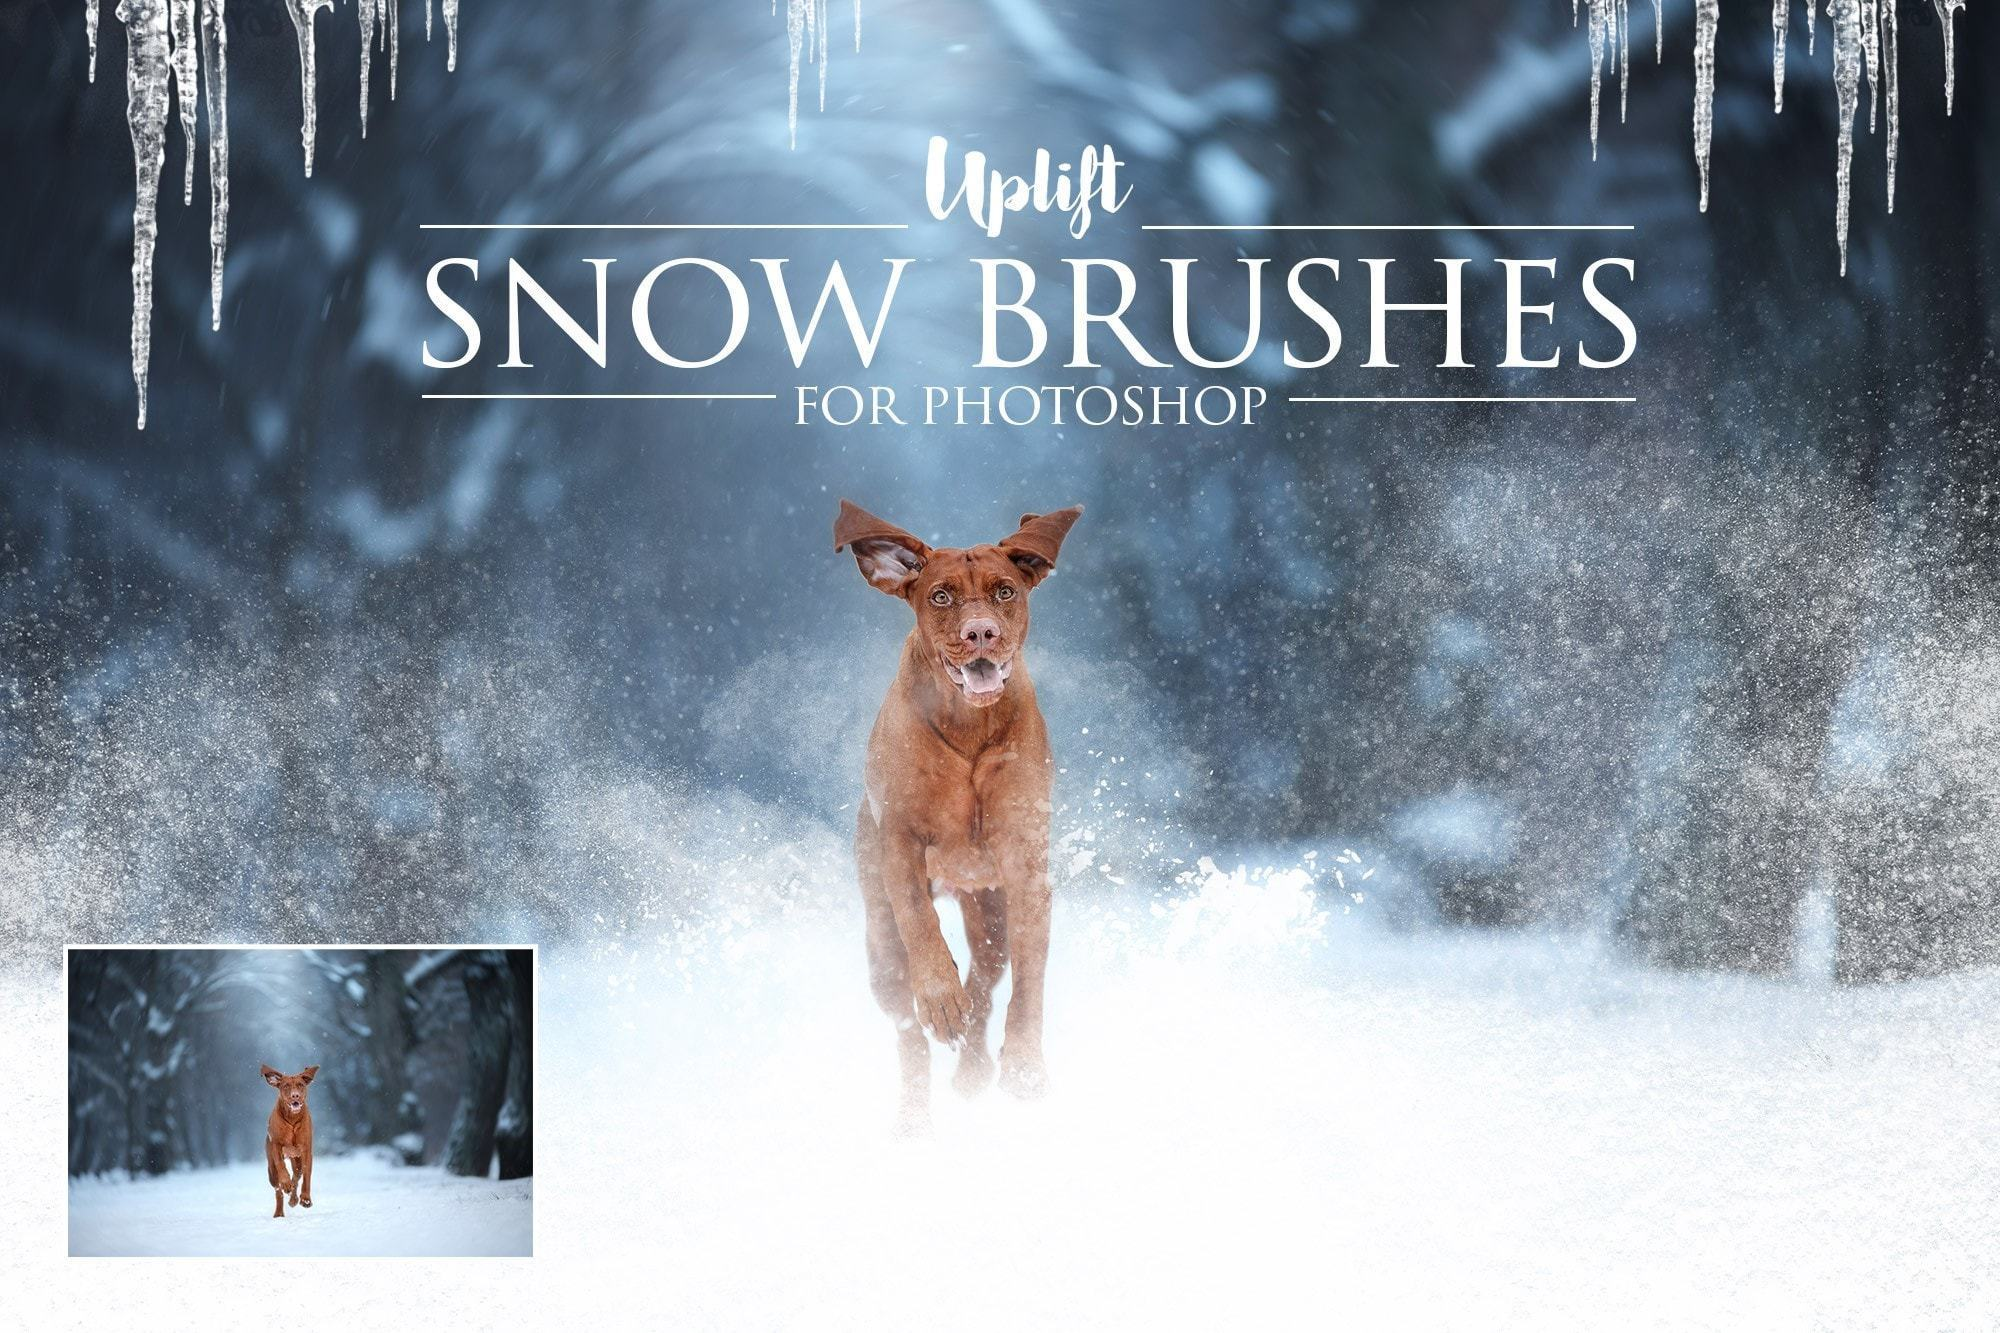 【S545】冬天雪地雪景后期PS笔刷 25 SNOW BRUSHES FOR PHOTOSHOP